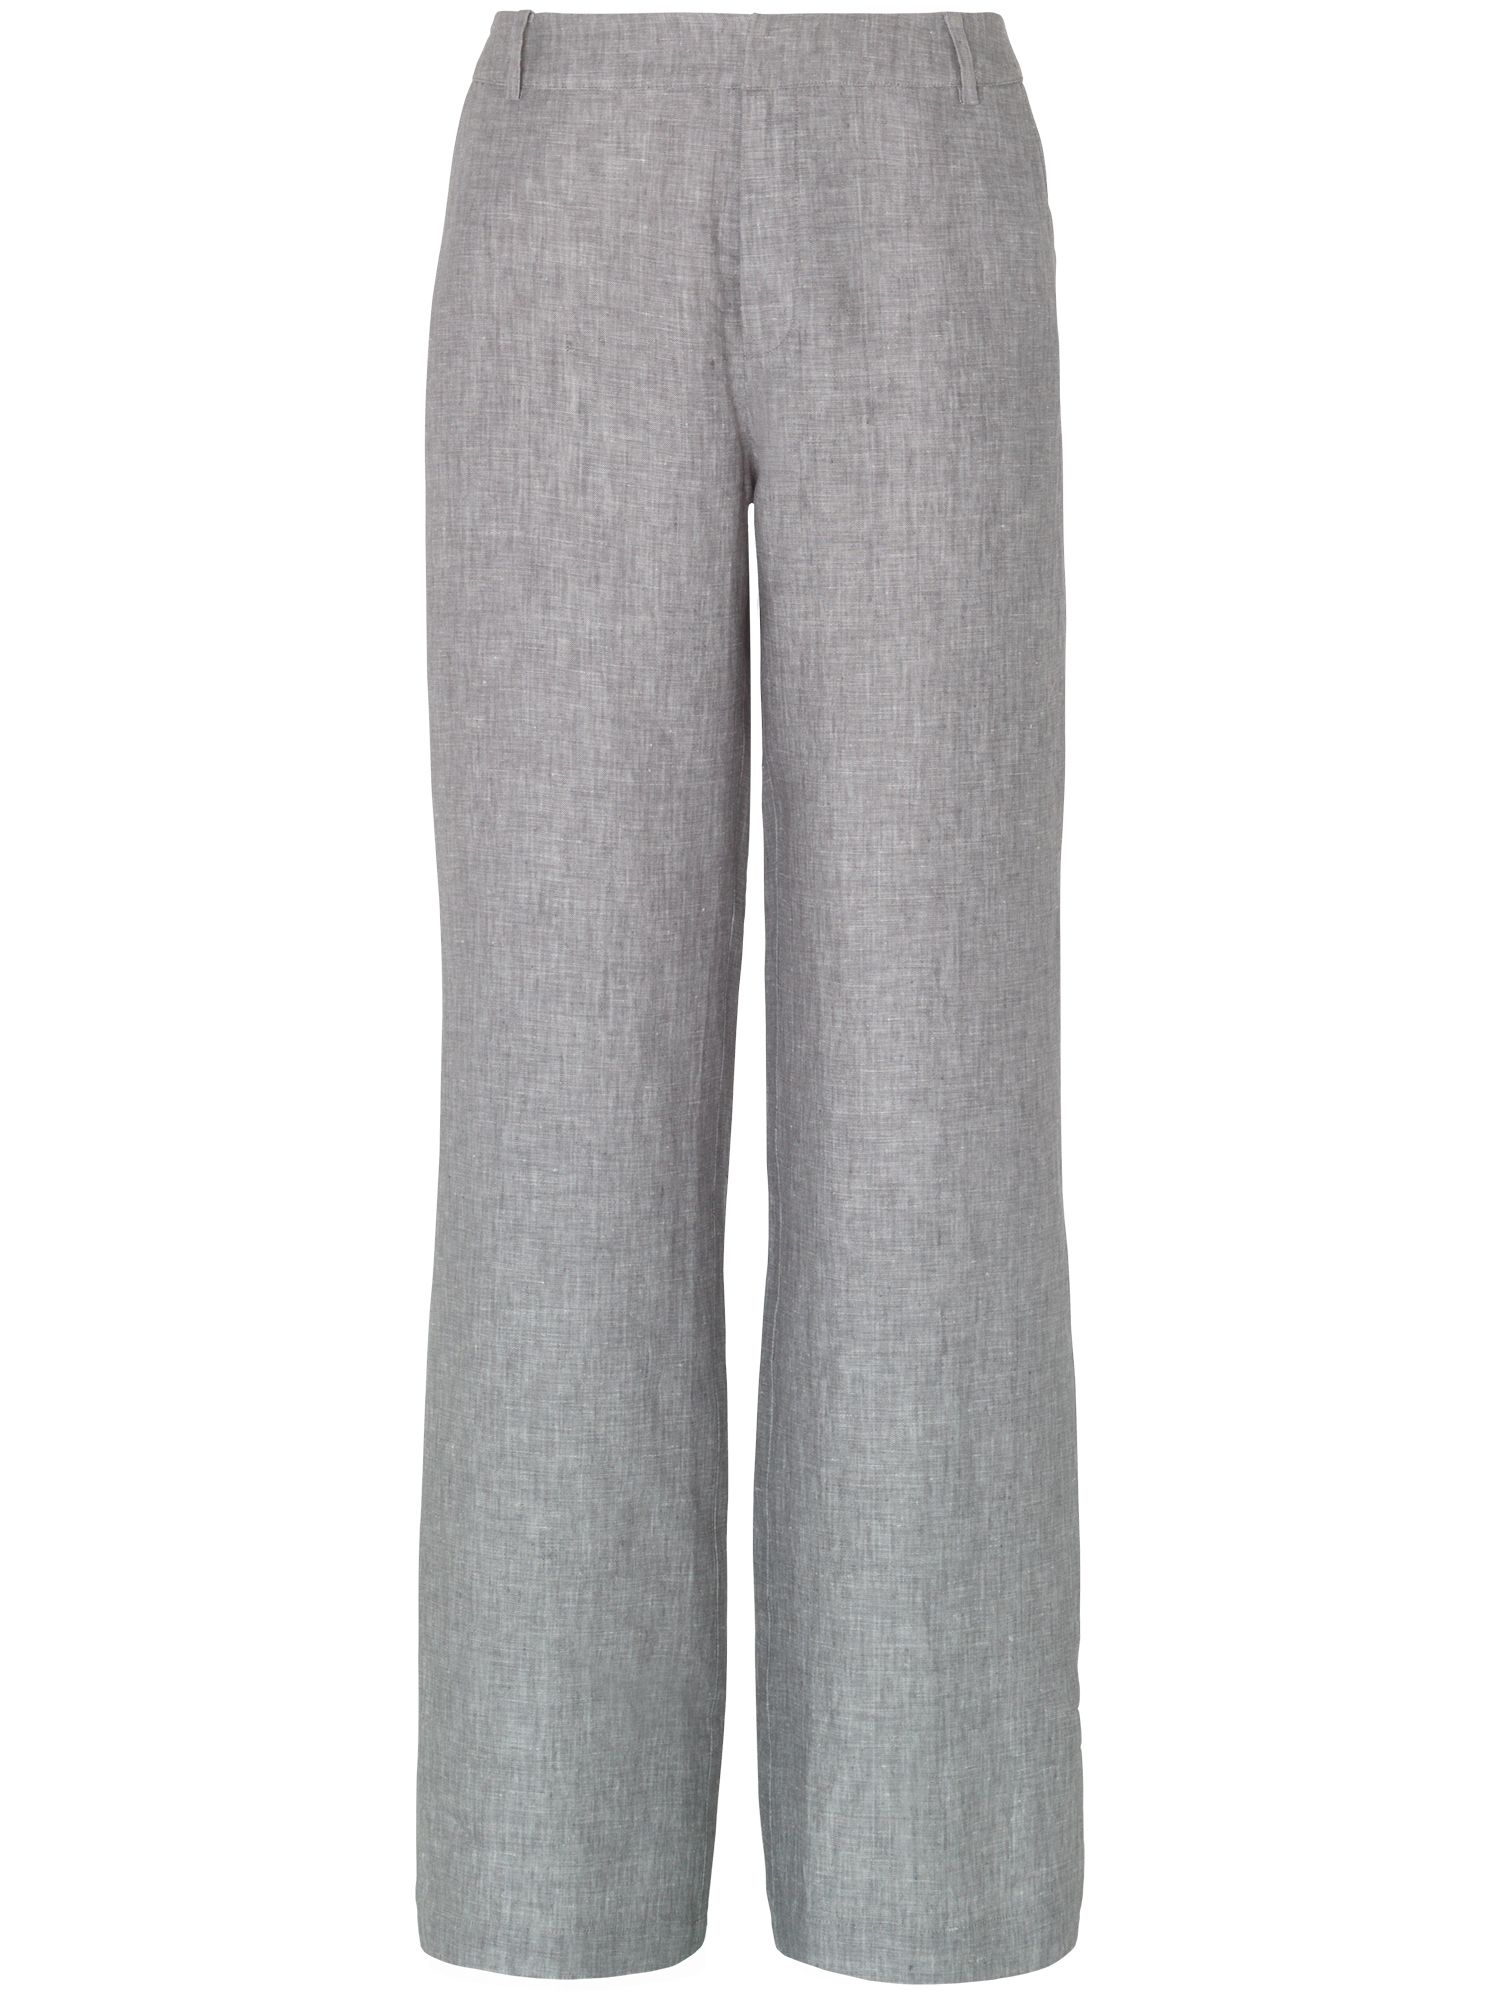 Christiana cross dye linen trousers